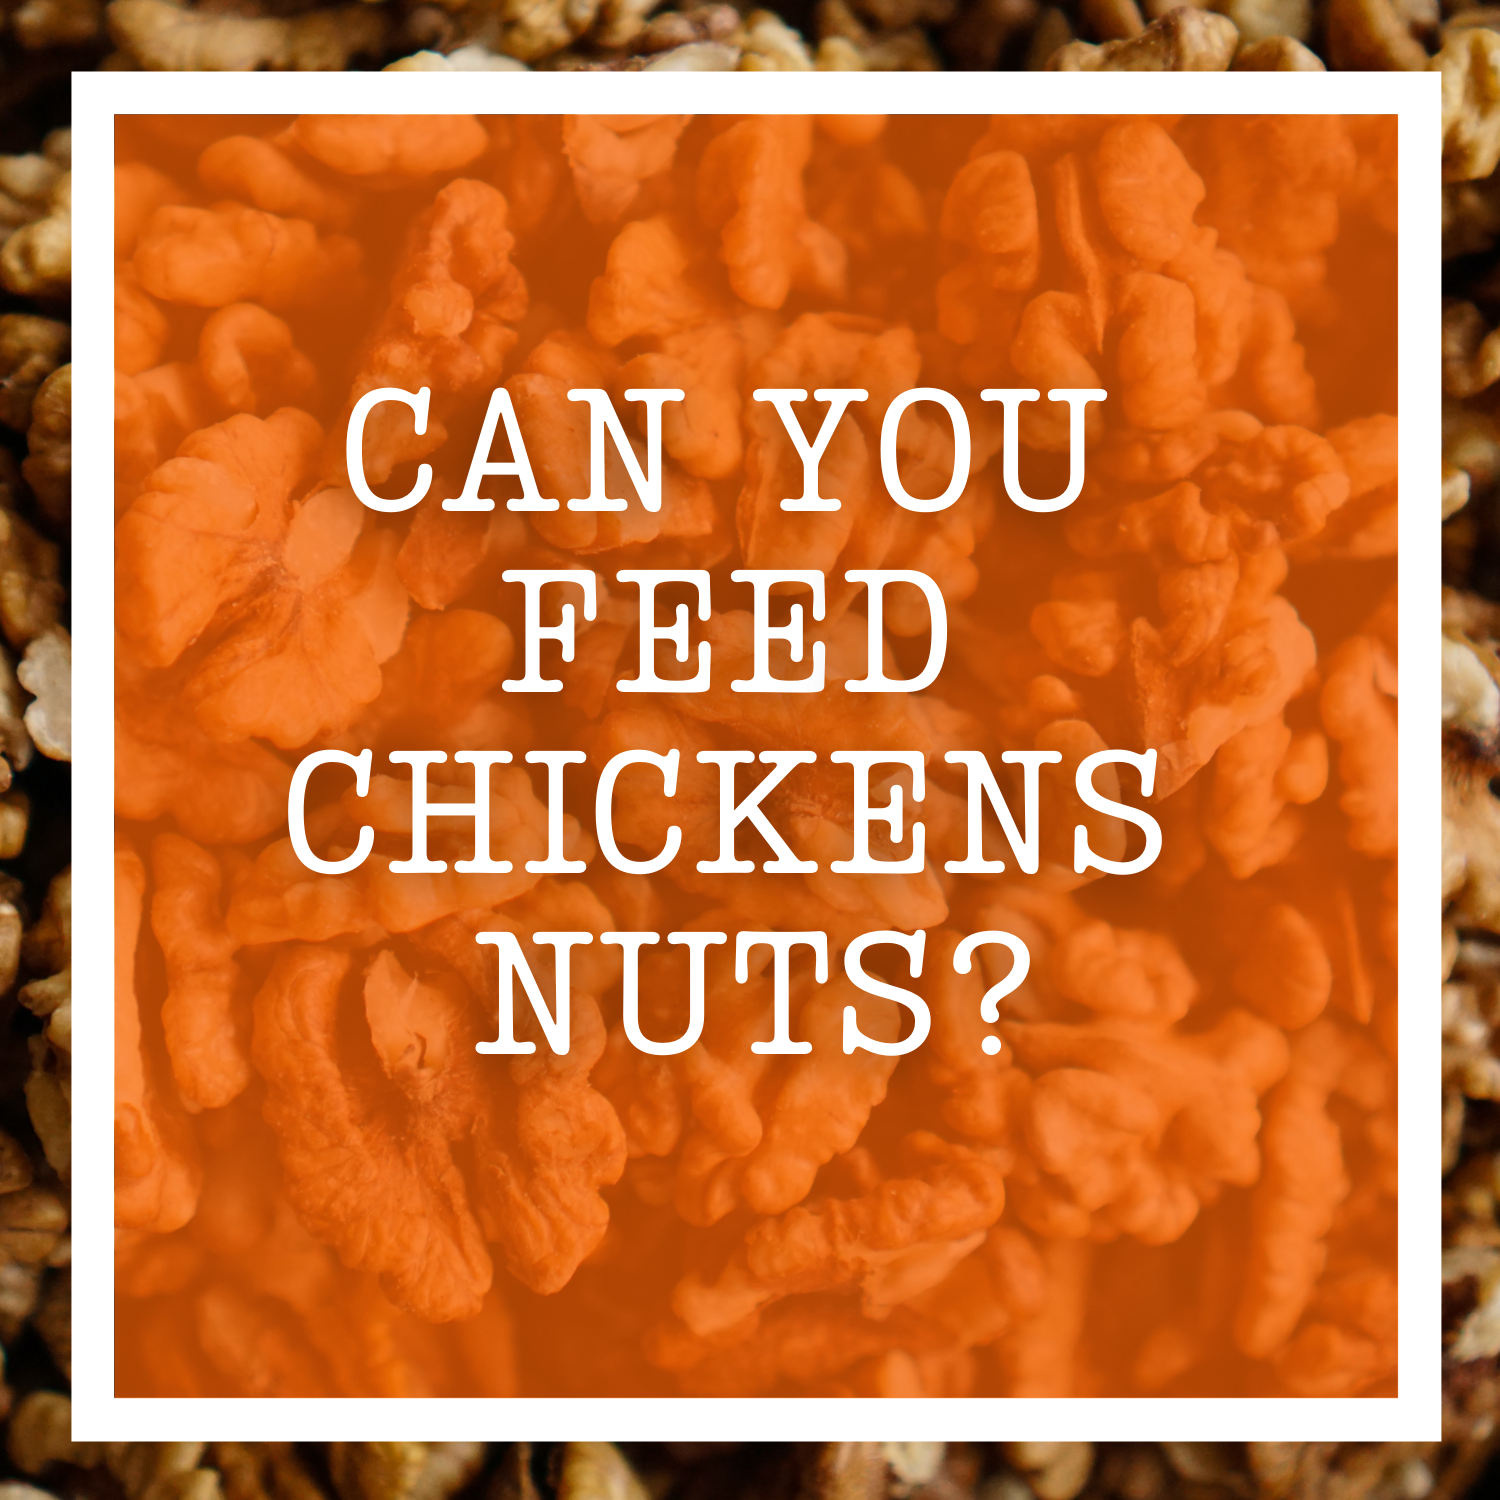 Can You Feed Chickens Nuts?